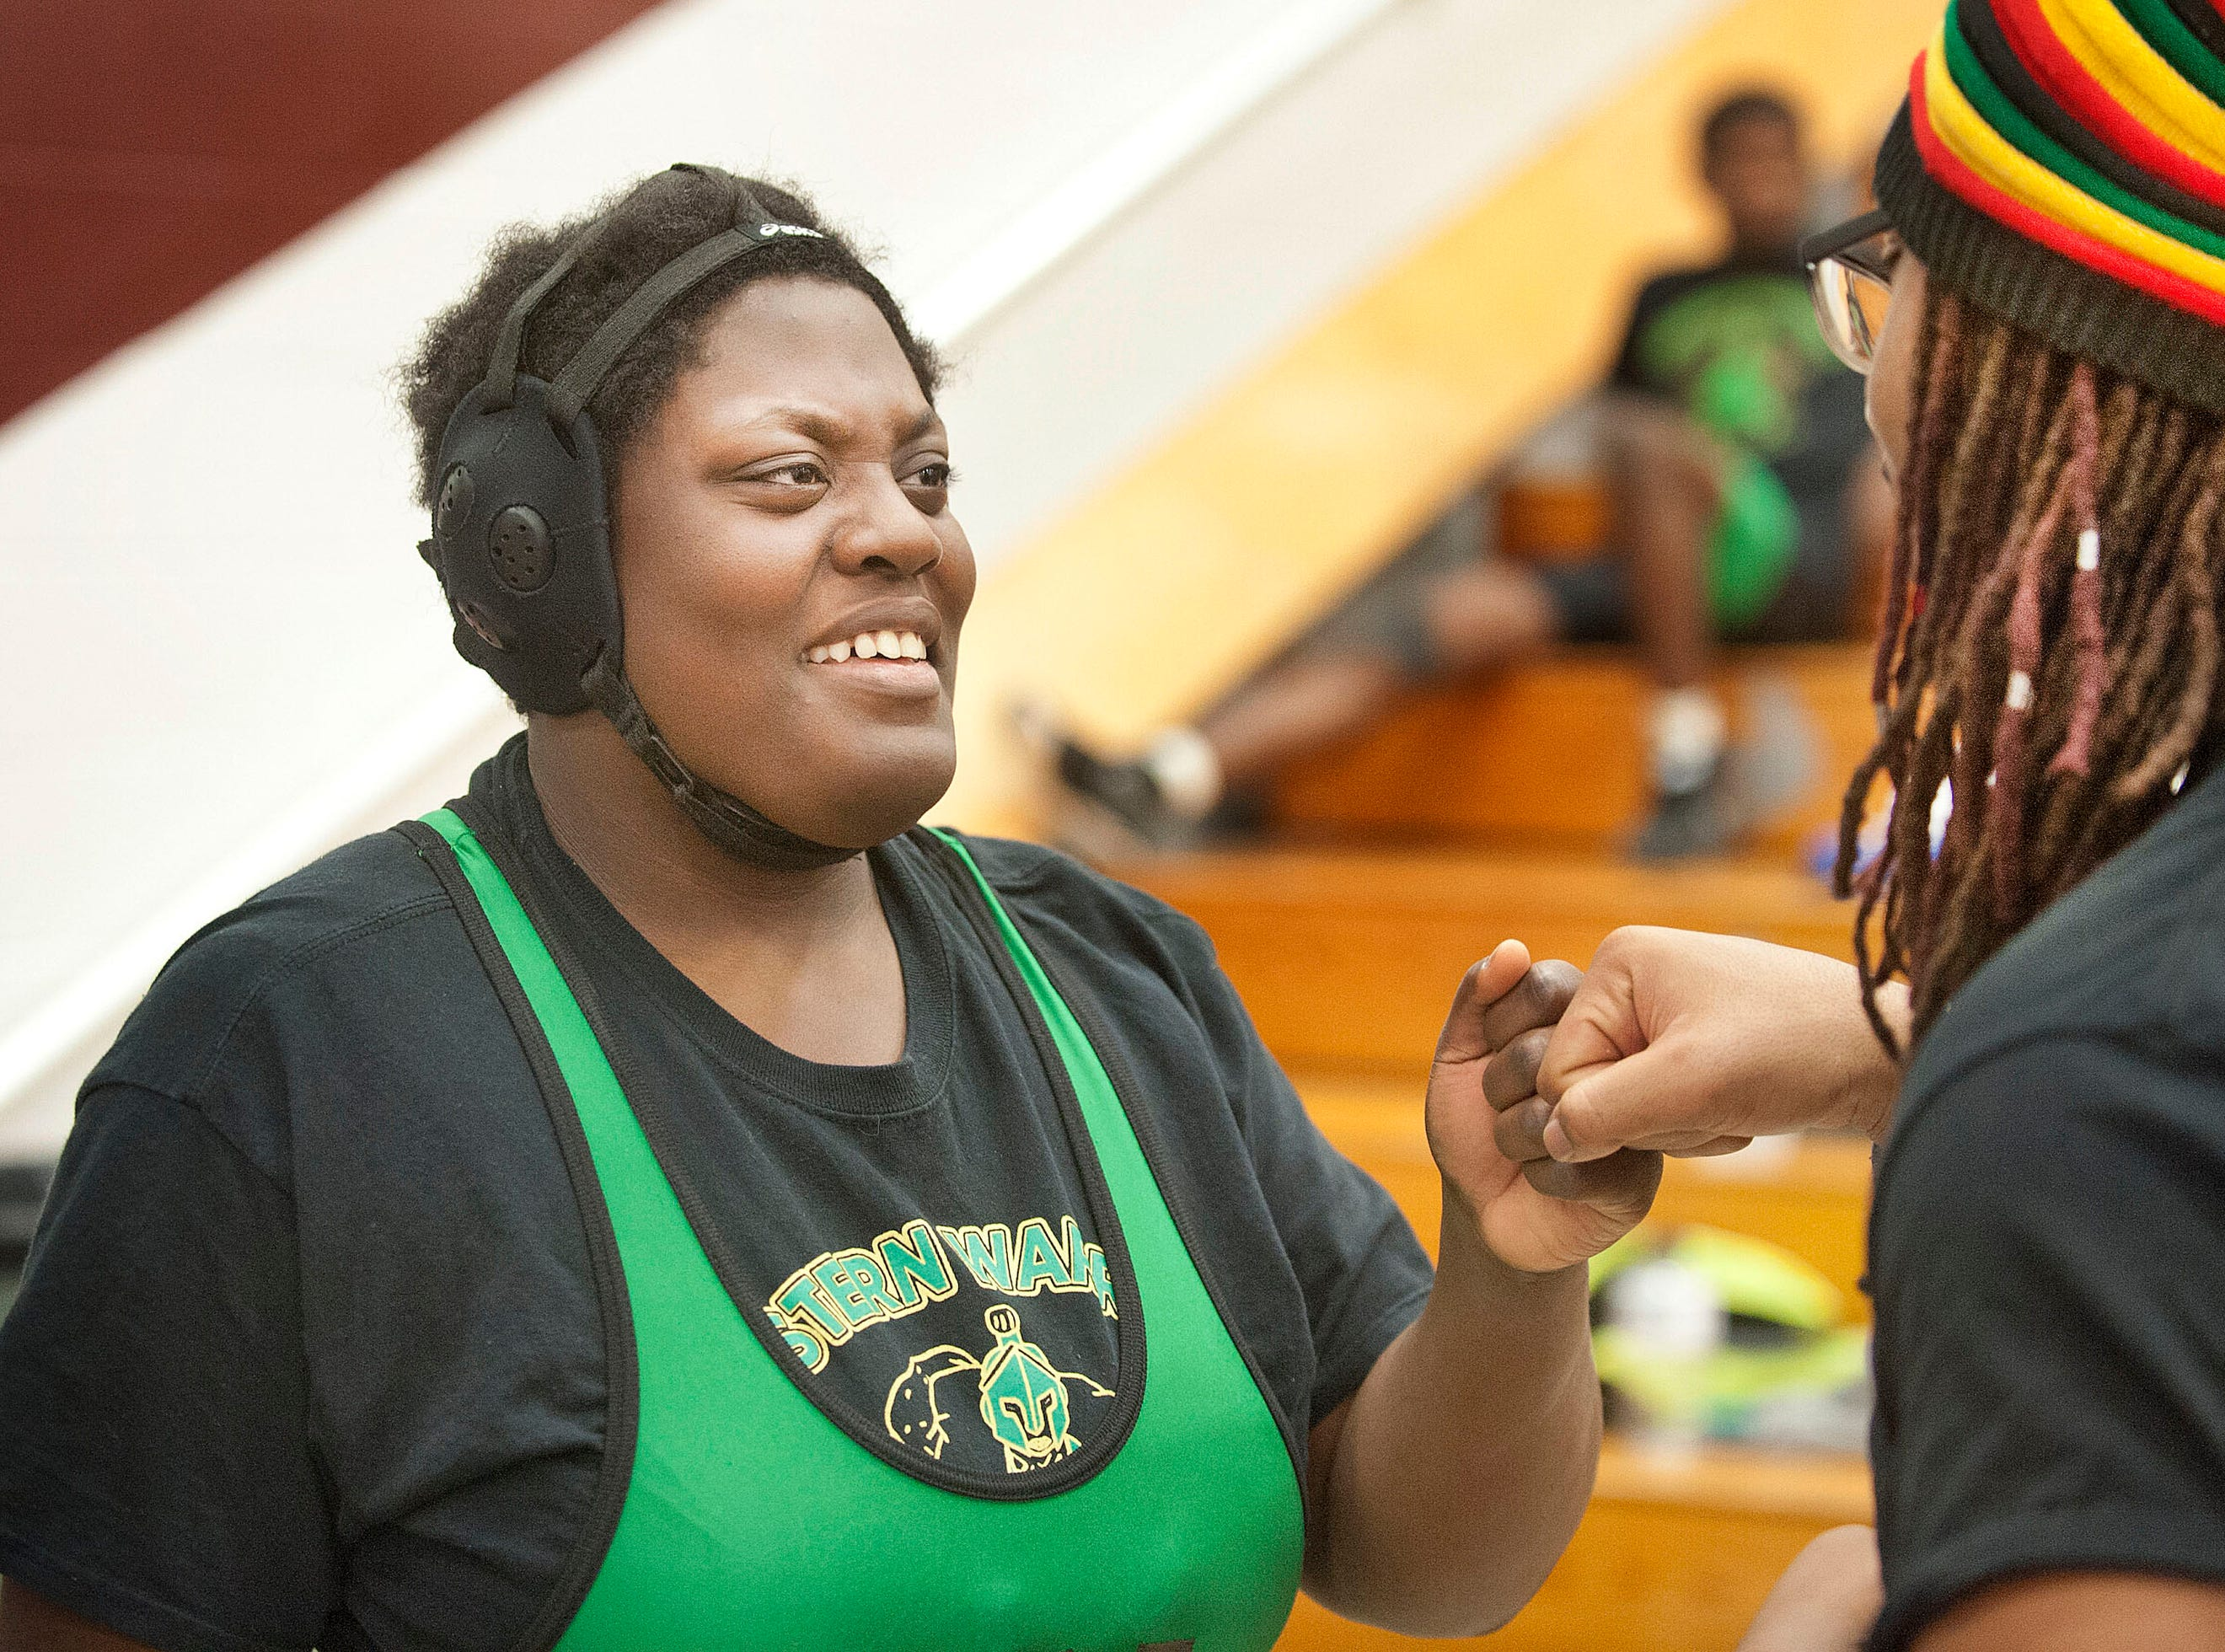 Assistant wrestling coach Desean Straaton gives her an encouraging fist bump before the start of her match.09 February 2019